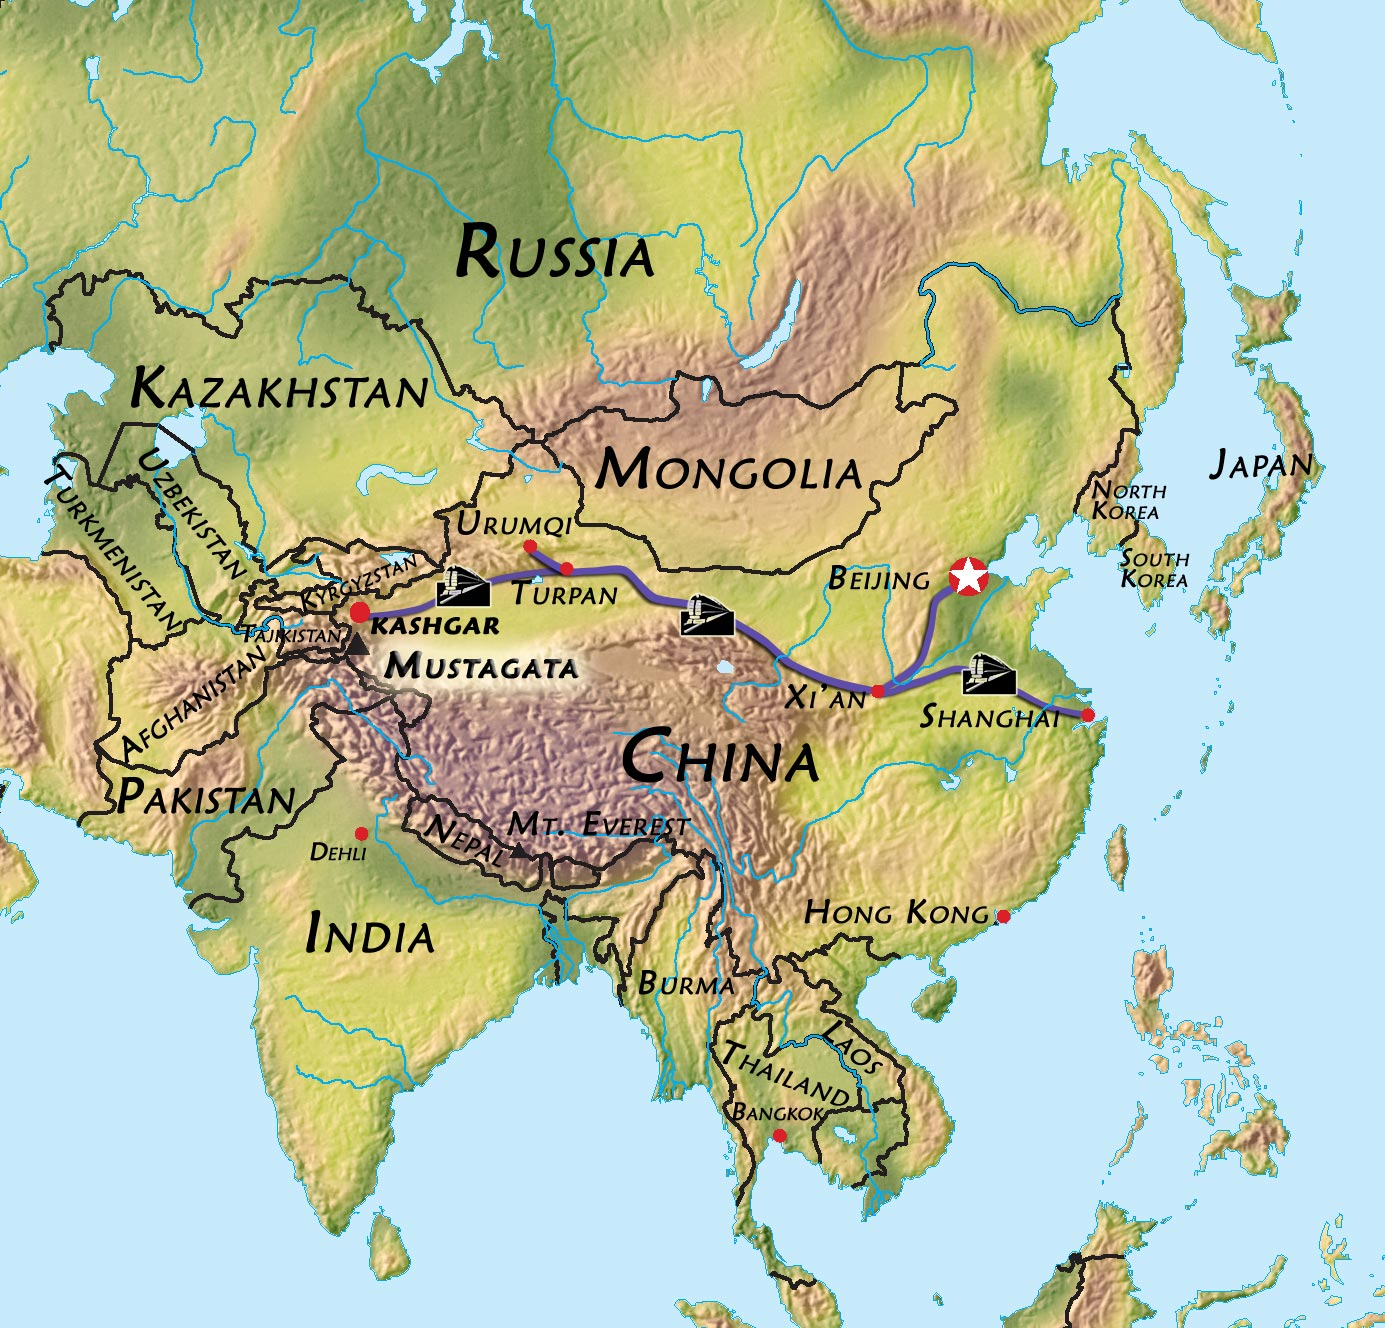 Old Silk-route of Kashgar and Urumqi, China